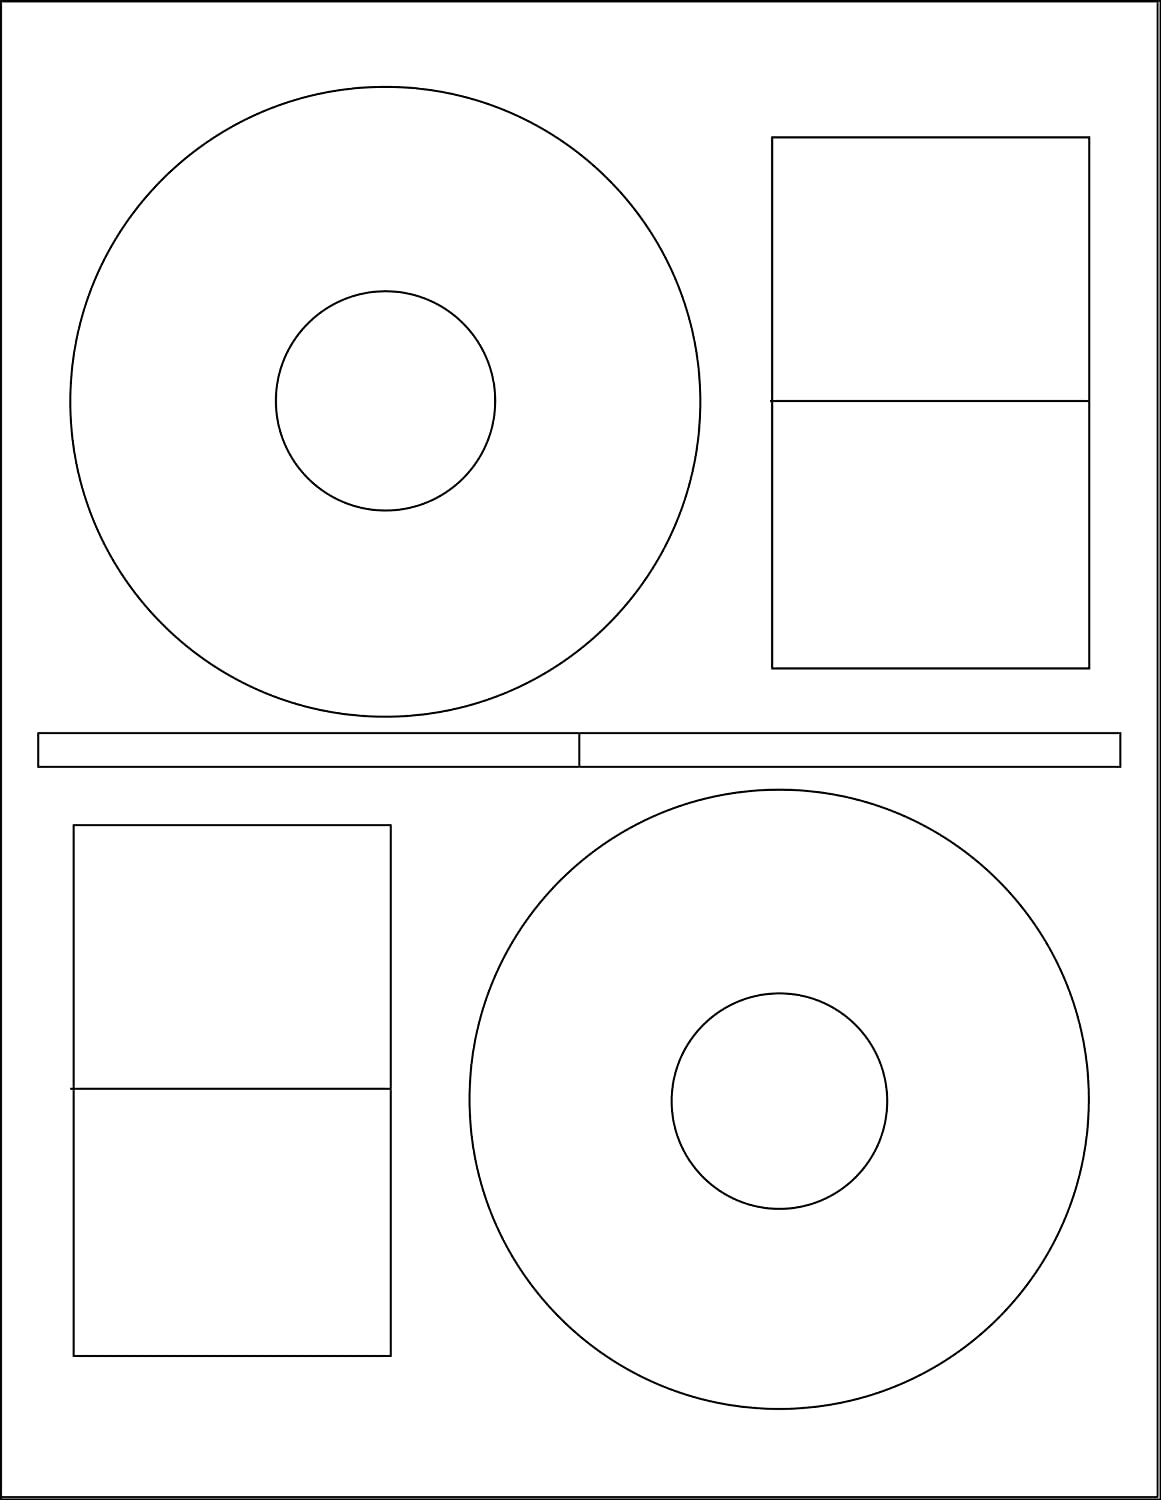 Cdstomper template 28 images cd stomper 2 up slim for Cd stomper 2 up standard with center labels template